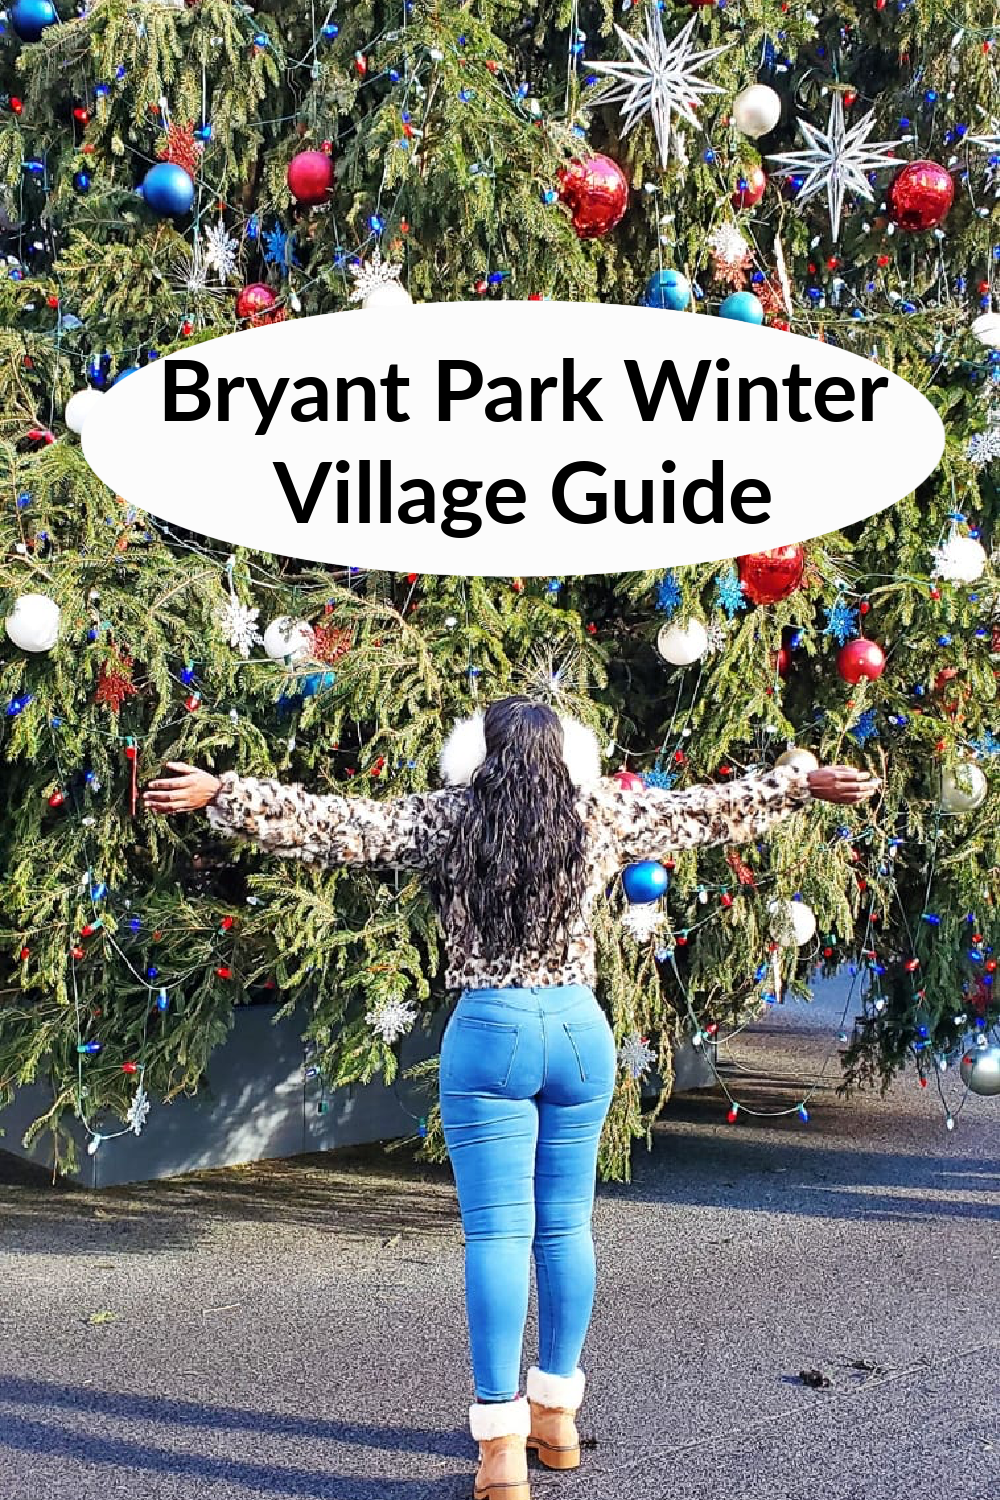 Bryant Park Christmas Village| Bryant Park Winter Viillage| Bank of America Ice Skating| Holiday Shops in Nyc| Nyc Christmas Events #newyorkcity #nyc #bryantpark #nycevents #christmas2020 #nycchristmas #iceskating #nyciceskating #rockefellercenter #holidayshops #thingstodoinnyc #Christmasinnyc #holidaytravel #wintertravel #nyctravelguide #nyctravelitinerary #bryantparknyc